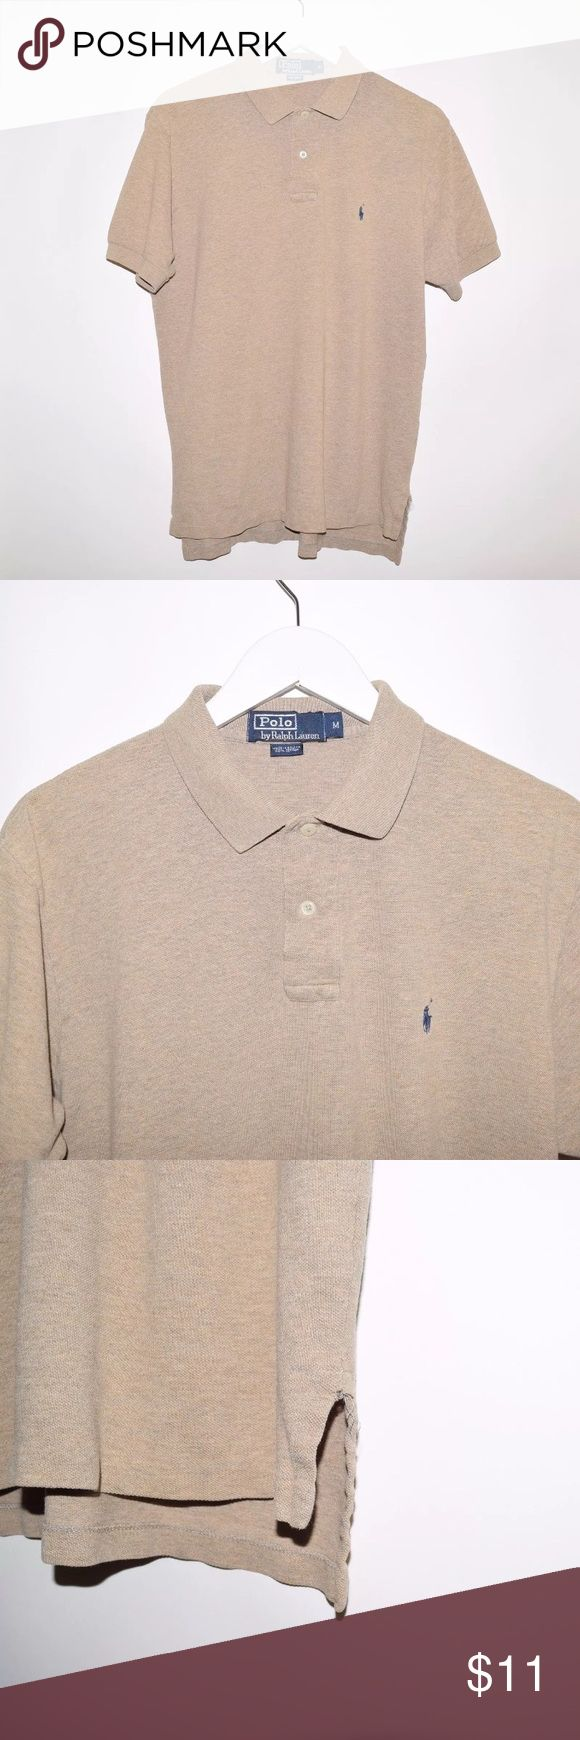 Polo Ralph Lauren 100% Cotton Polo Shirt Brand: Polo Ralph Lauren Item name: Men's 100% Cotton Polo Shirt  		 Color: Tan Condition: This is a pre-owned item. This item is in excellent condition with no stains, holes, etc. However, there are small snags on the bottom of the shirt at both sides (see photo). Comes from a smoke free home. Size: Medium Measurements:  Pit to Pit - 21.5 inches Shoulder to base -  Front: 27 inches Back: 28 inches Polo by Ralph Lauren Shirts Polos